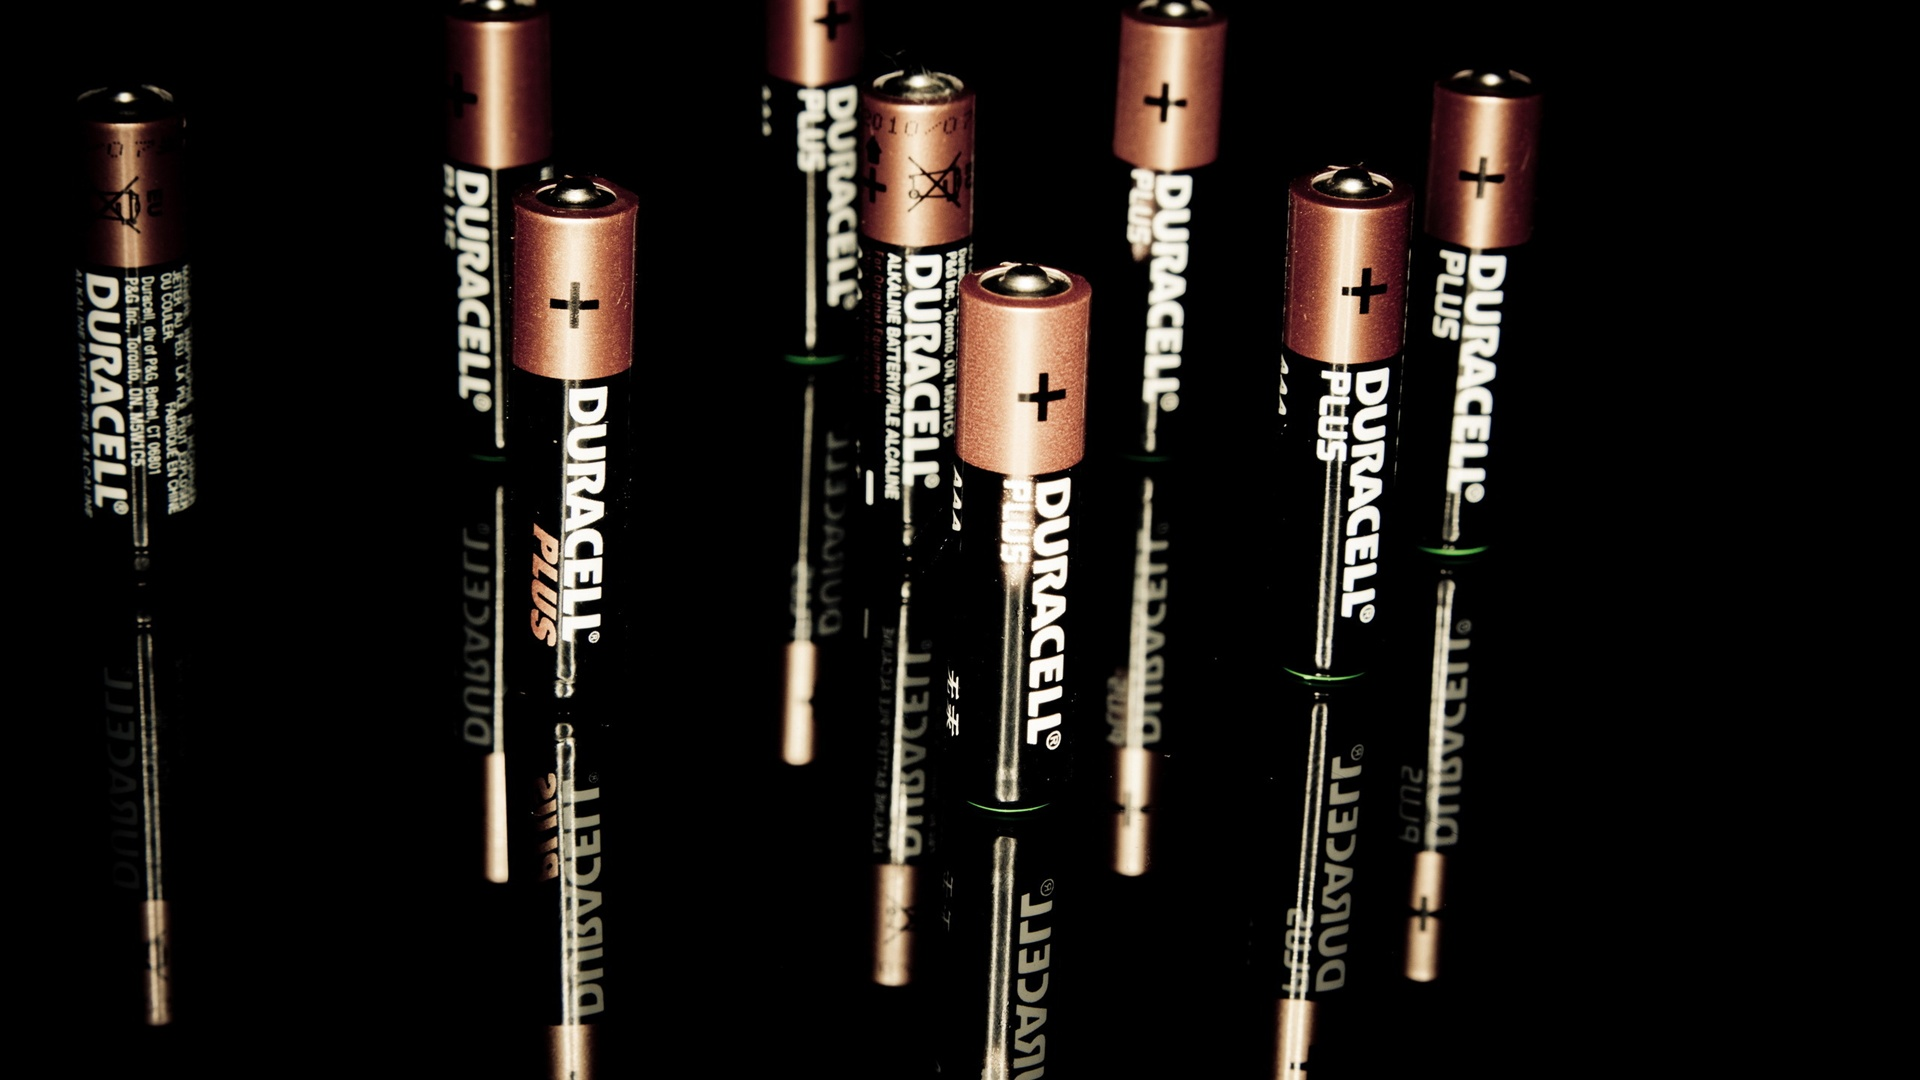 Wallpaper Duracell battery 2560x1600 HD Picture Image 1920x1080